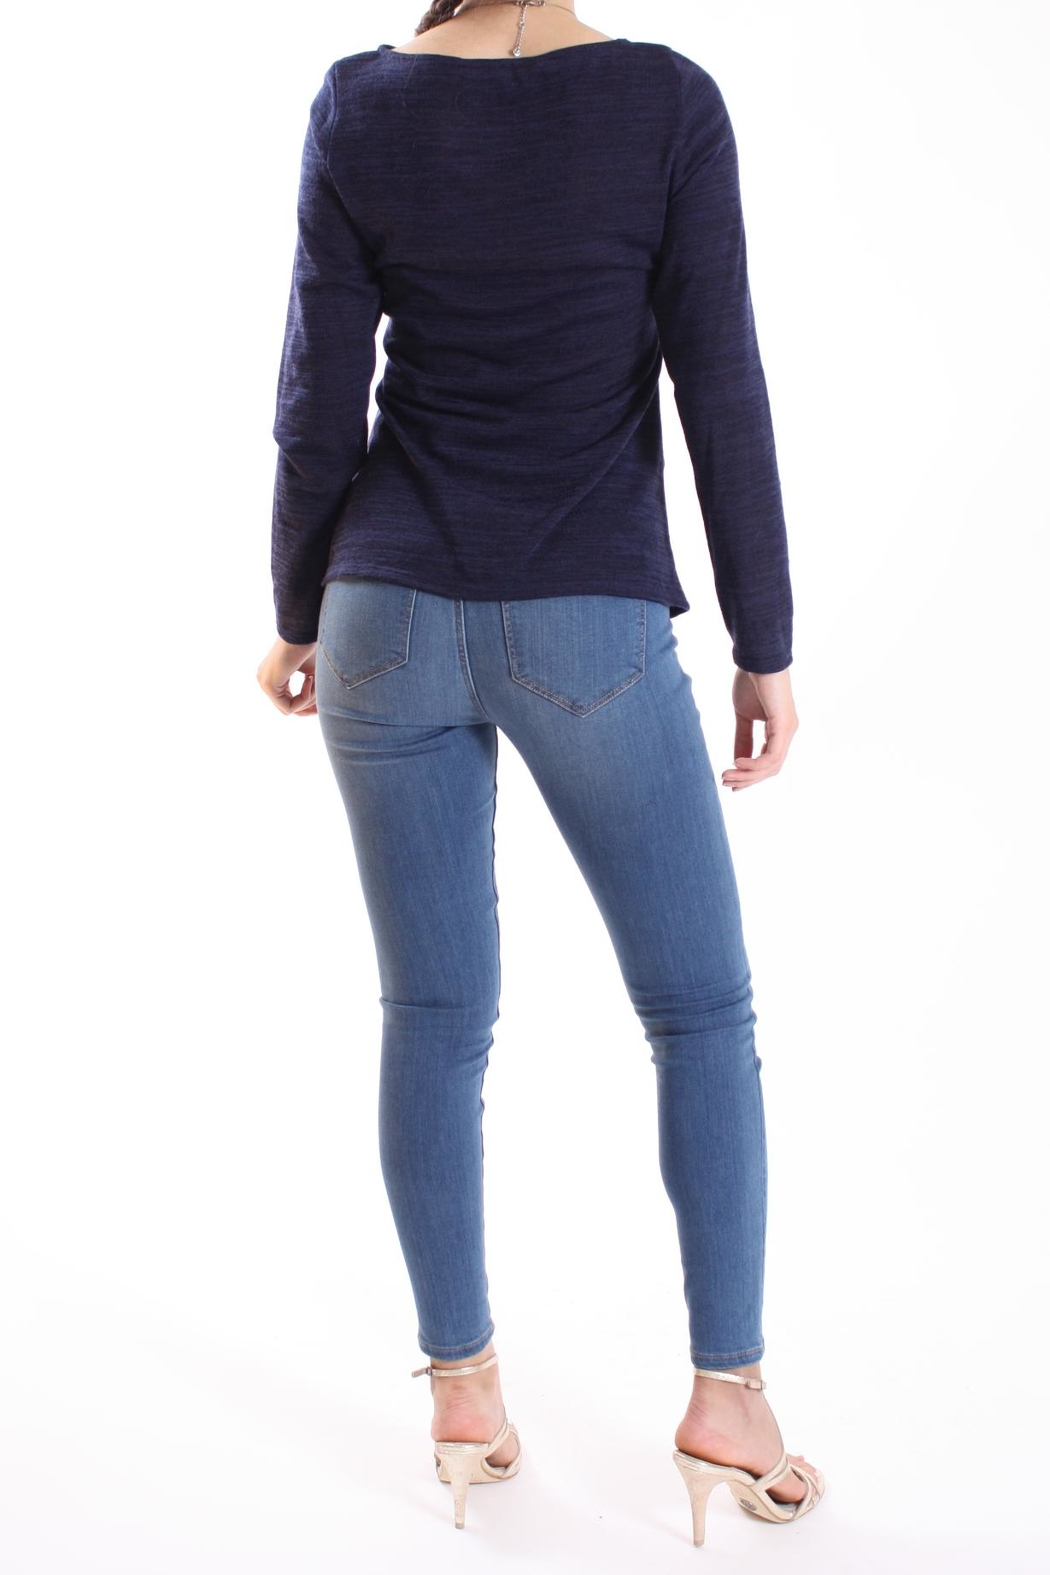 Talk of the Walk Heather Ruched Sweater - Back Cropped Image